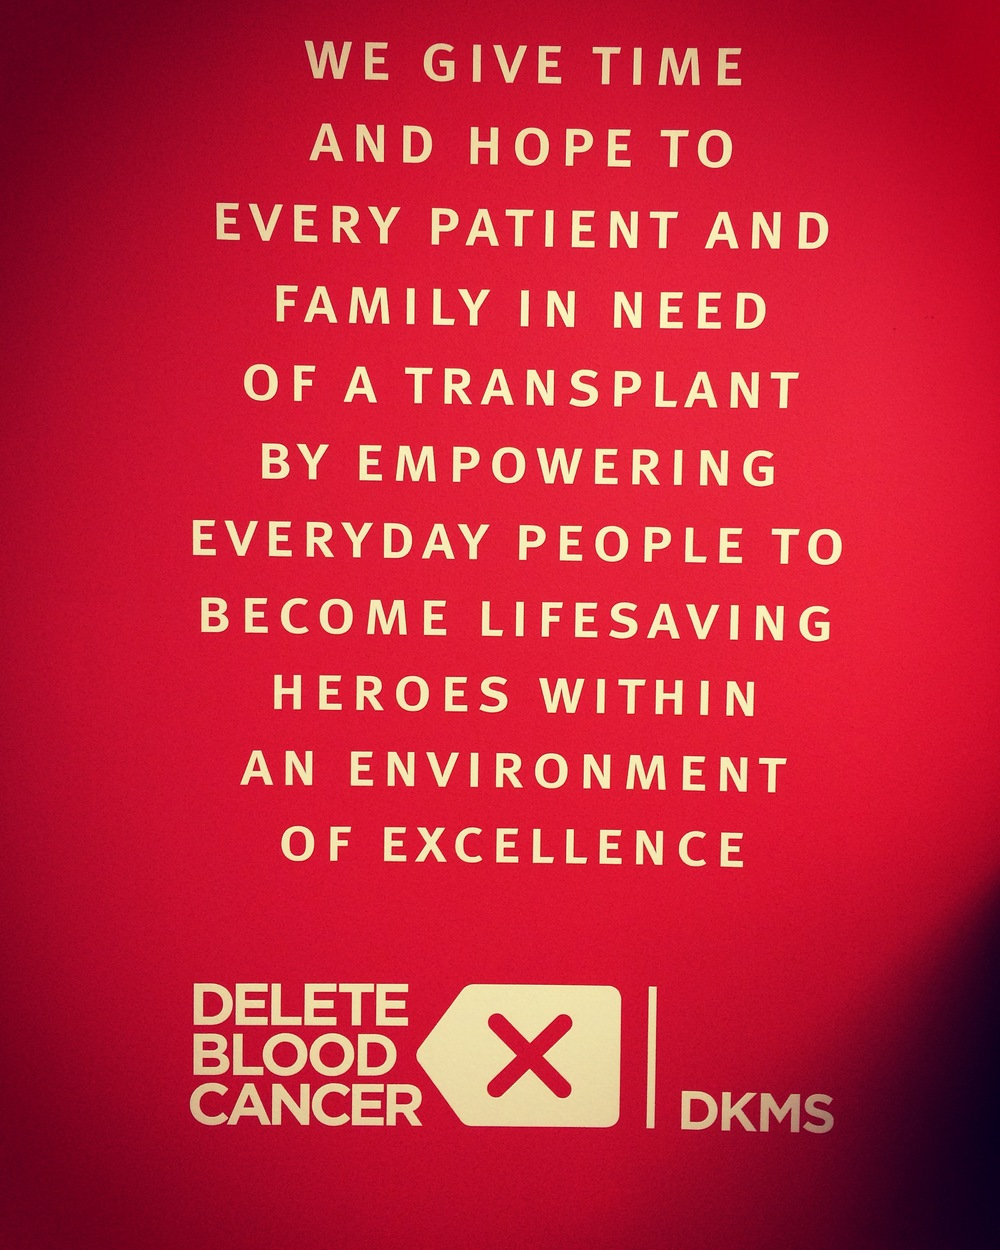 delete blood cancer office logo